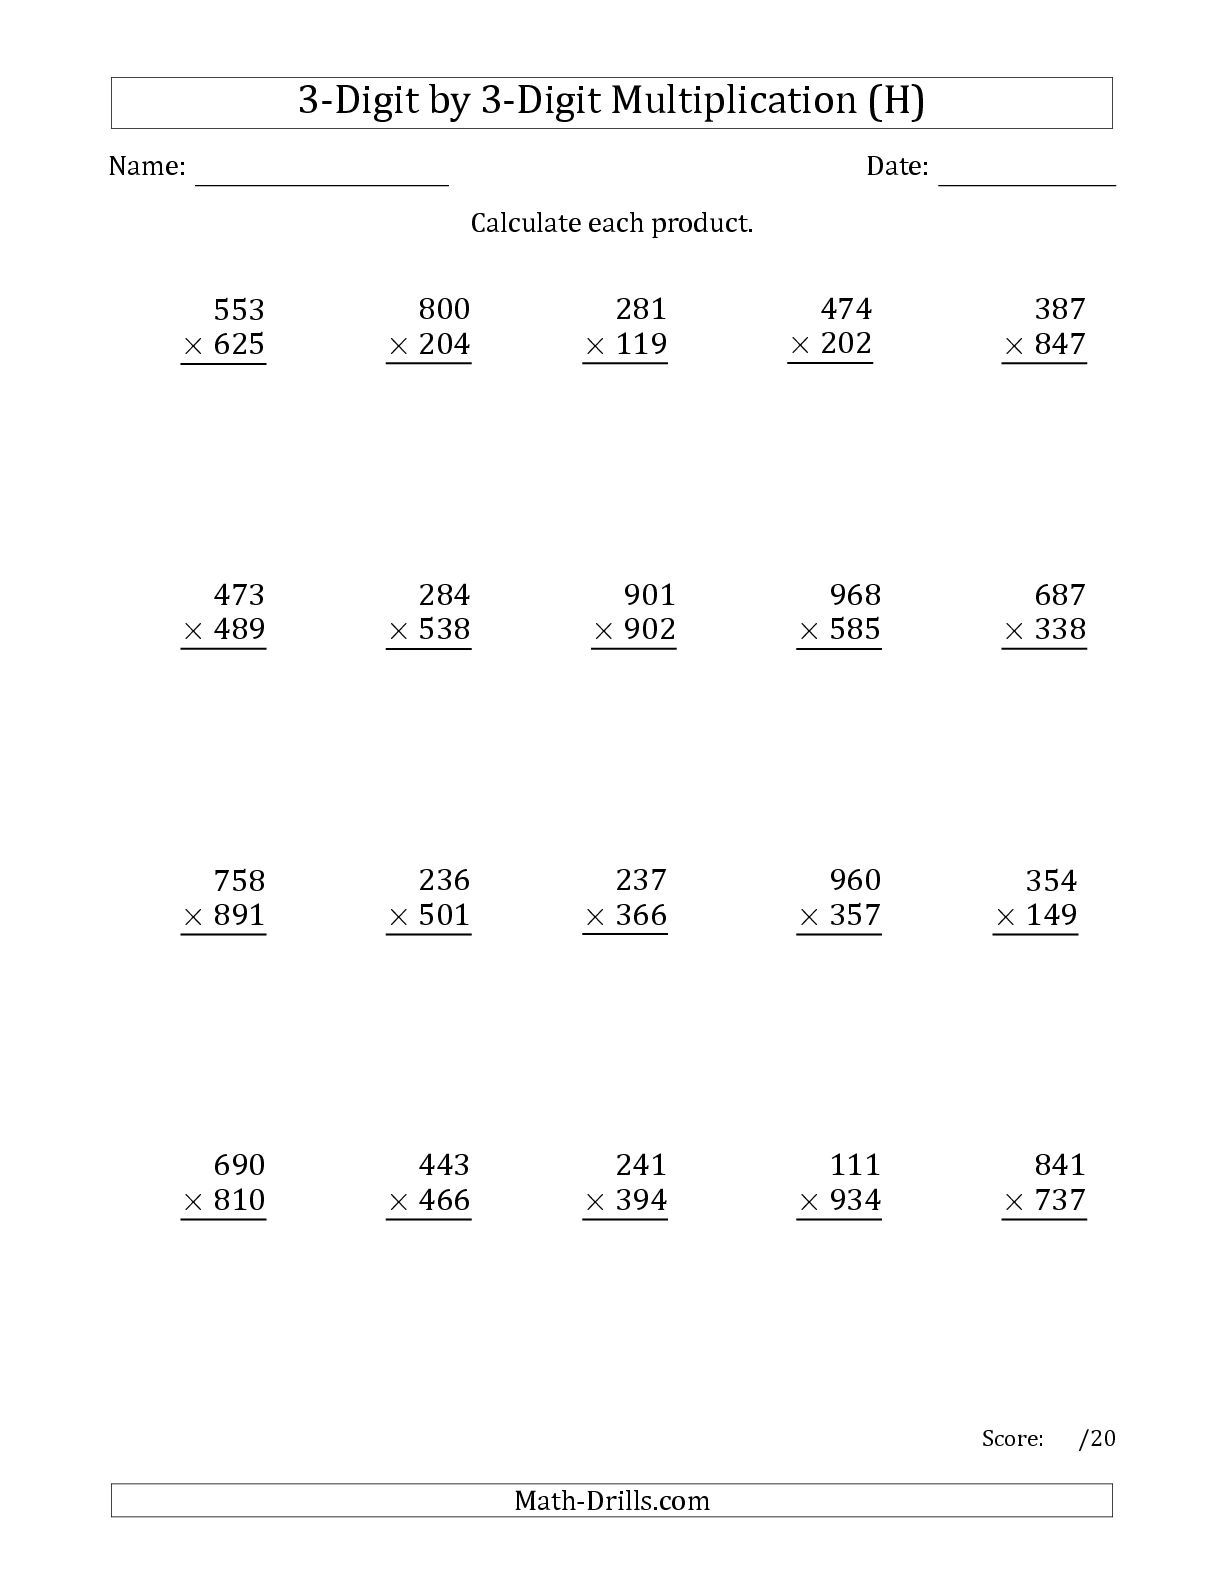 worksheet Multiplication By 3 Worksheet the multiplying 3 digit by numbers with comma separated thousands